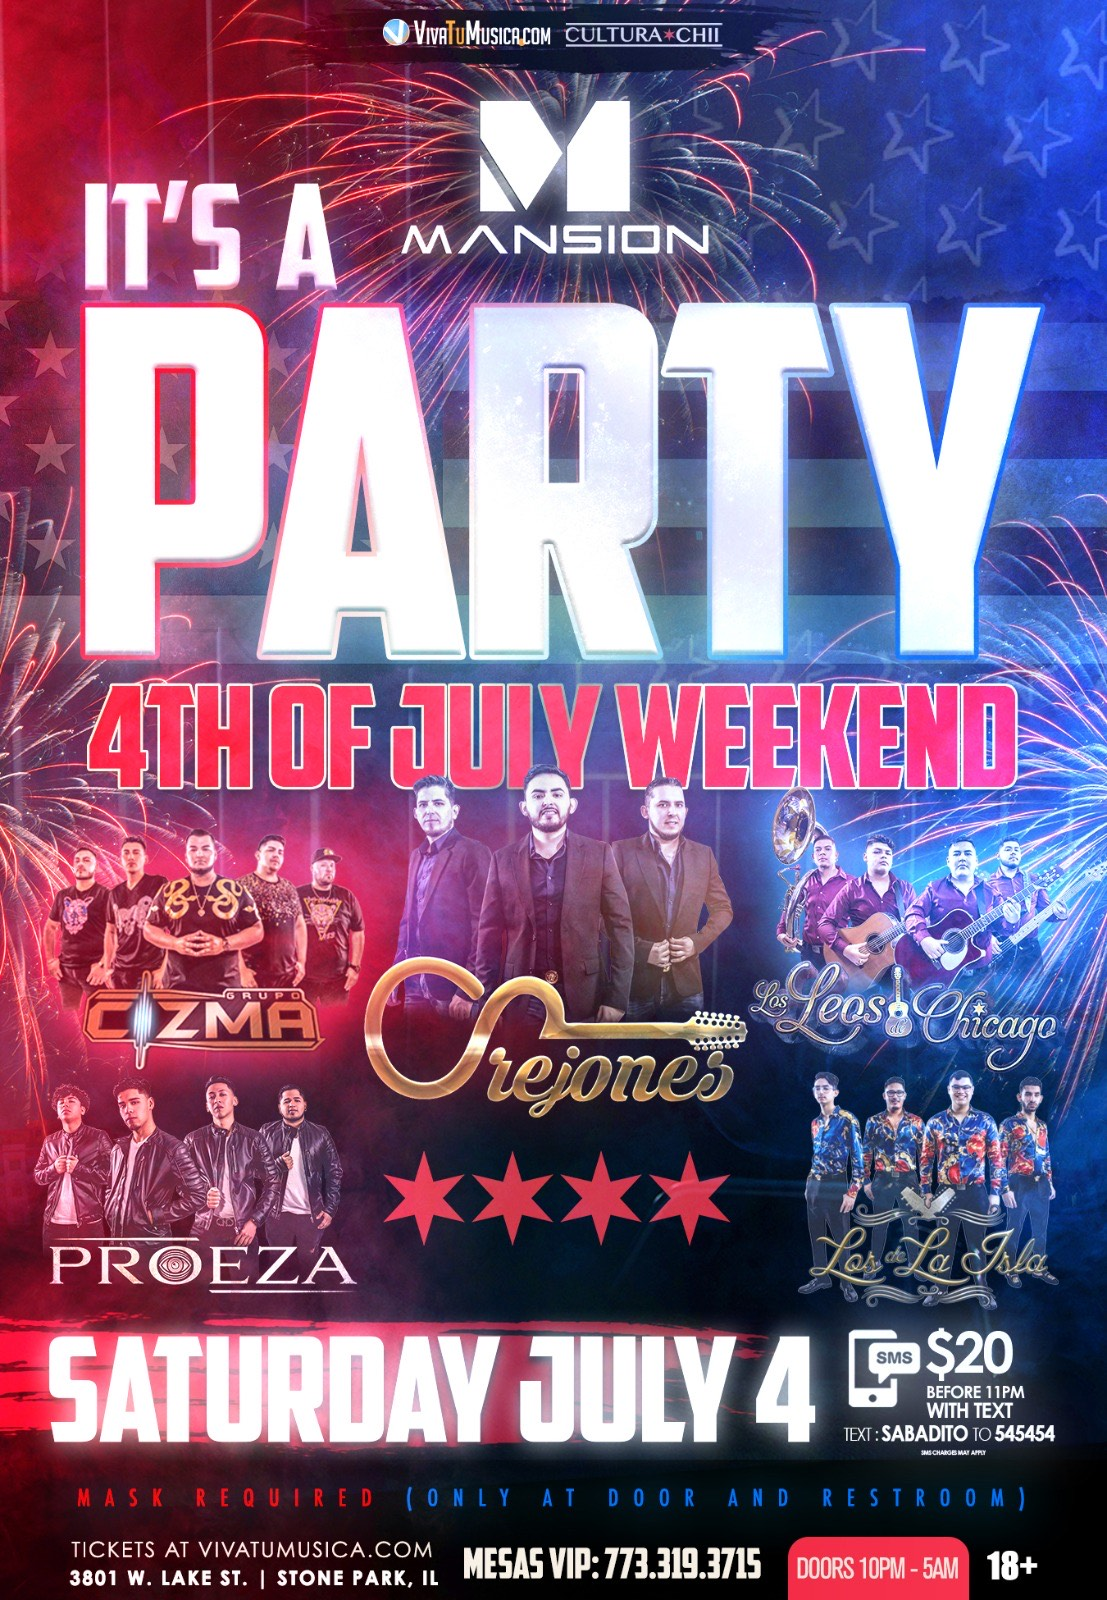 Party 4th of July Weekend - Mansion Nightclub @ Stone Park IL | Melrose Park | Illinois | United States